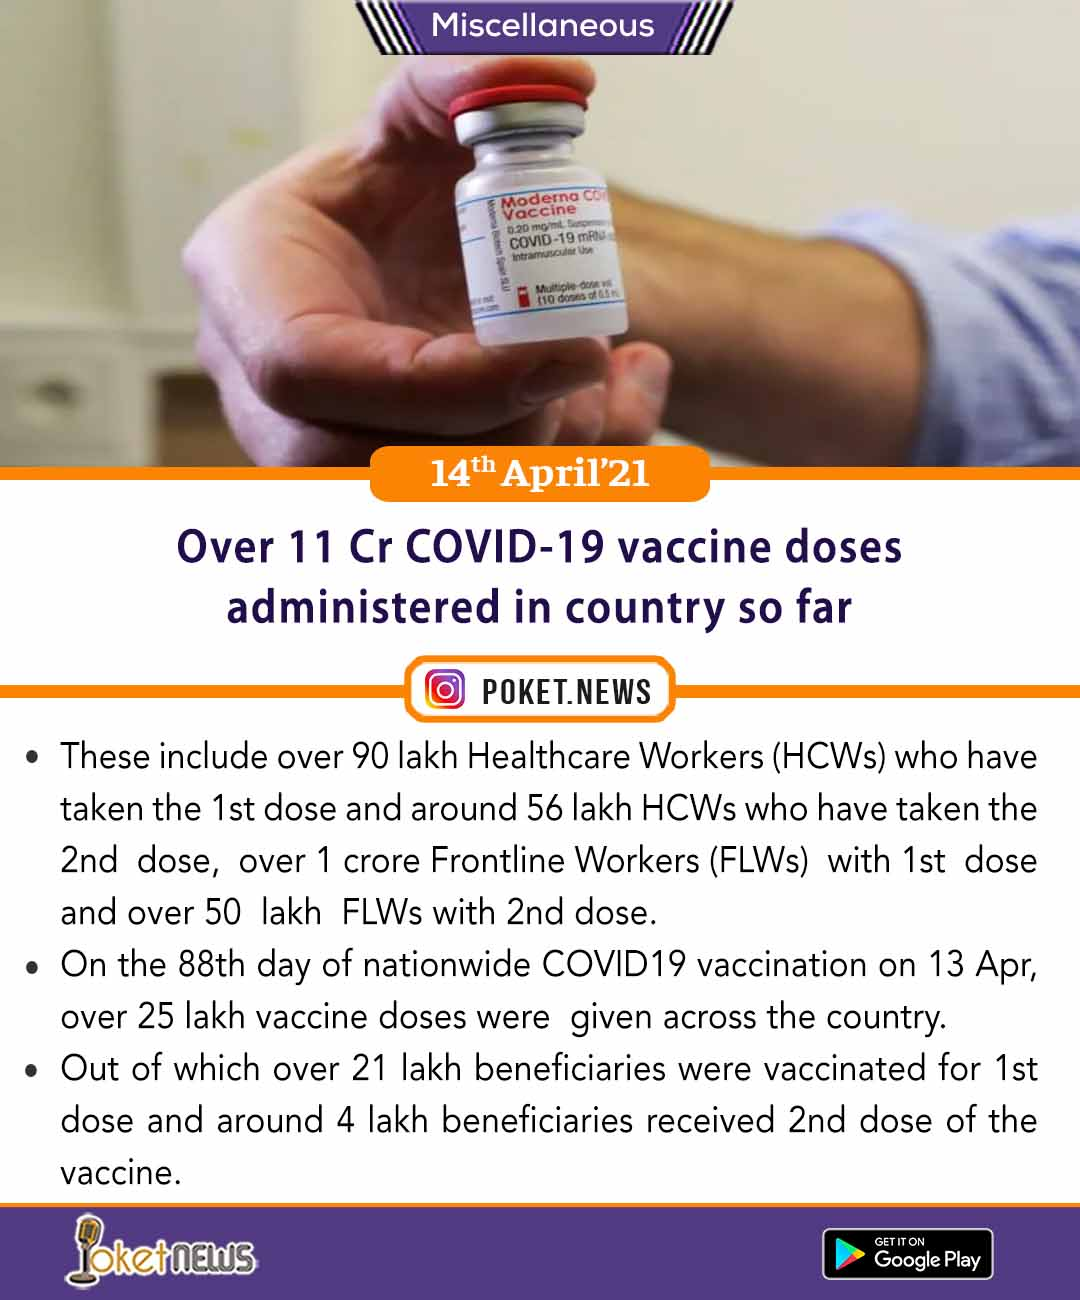 Over 11 Cr COVID-19 vaccine doses administered in country so far